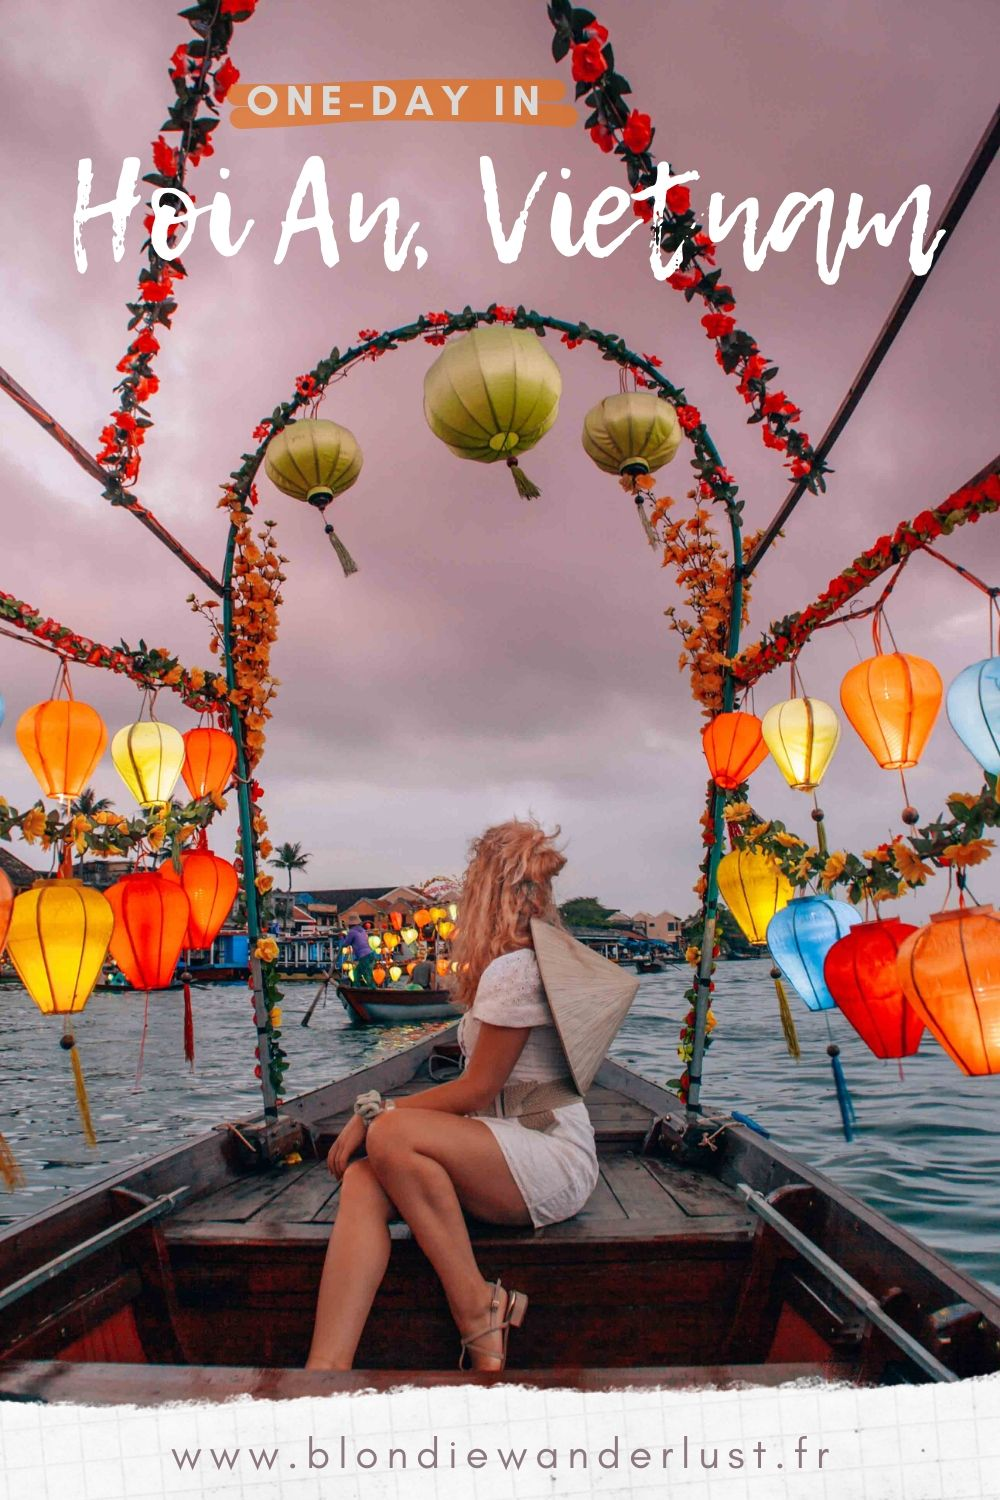 Must-see places in Hoi An, Vietnam, in 24h